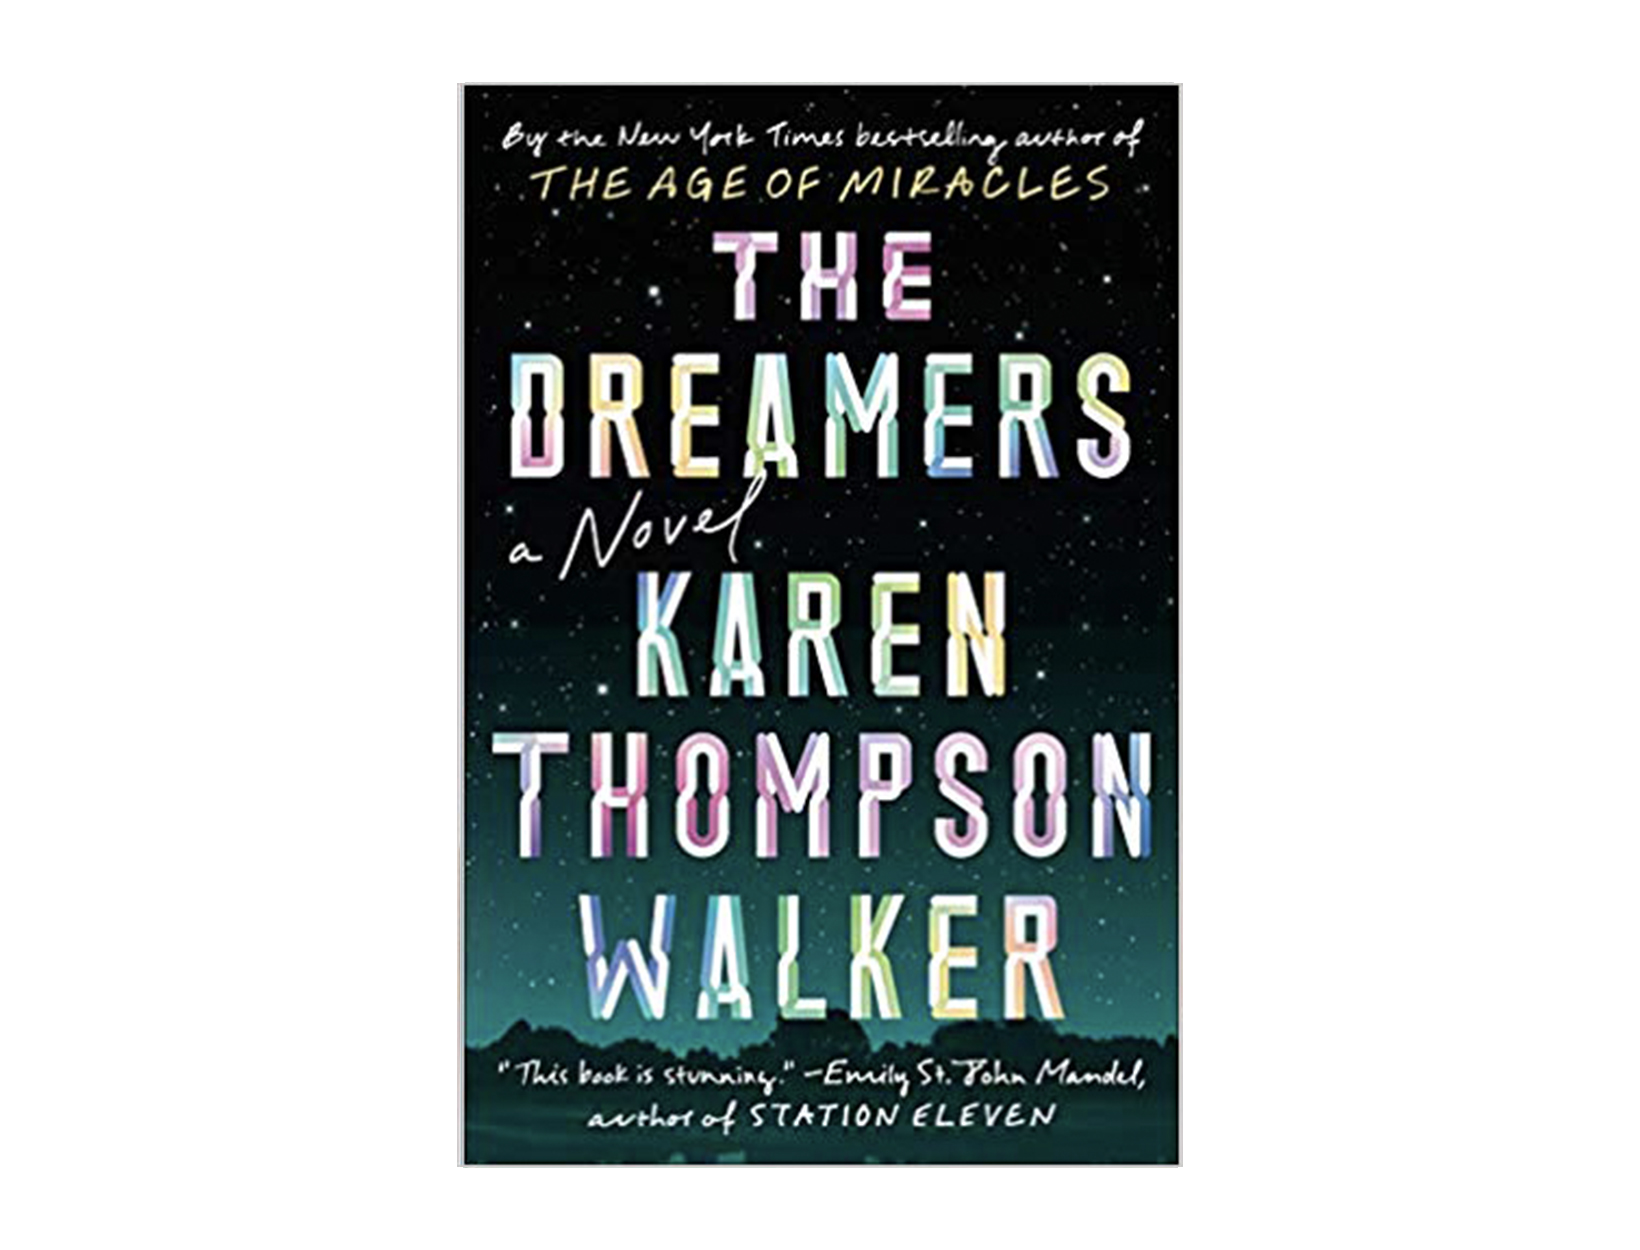 <em>The Dreamers</em> by Karen Thomson Walker